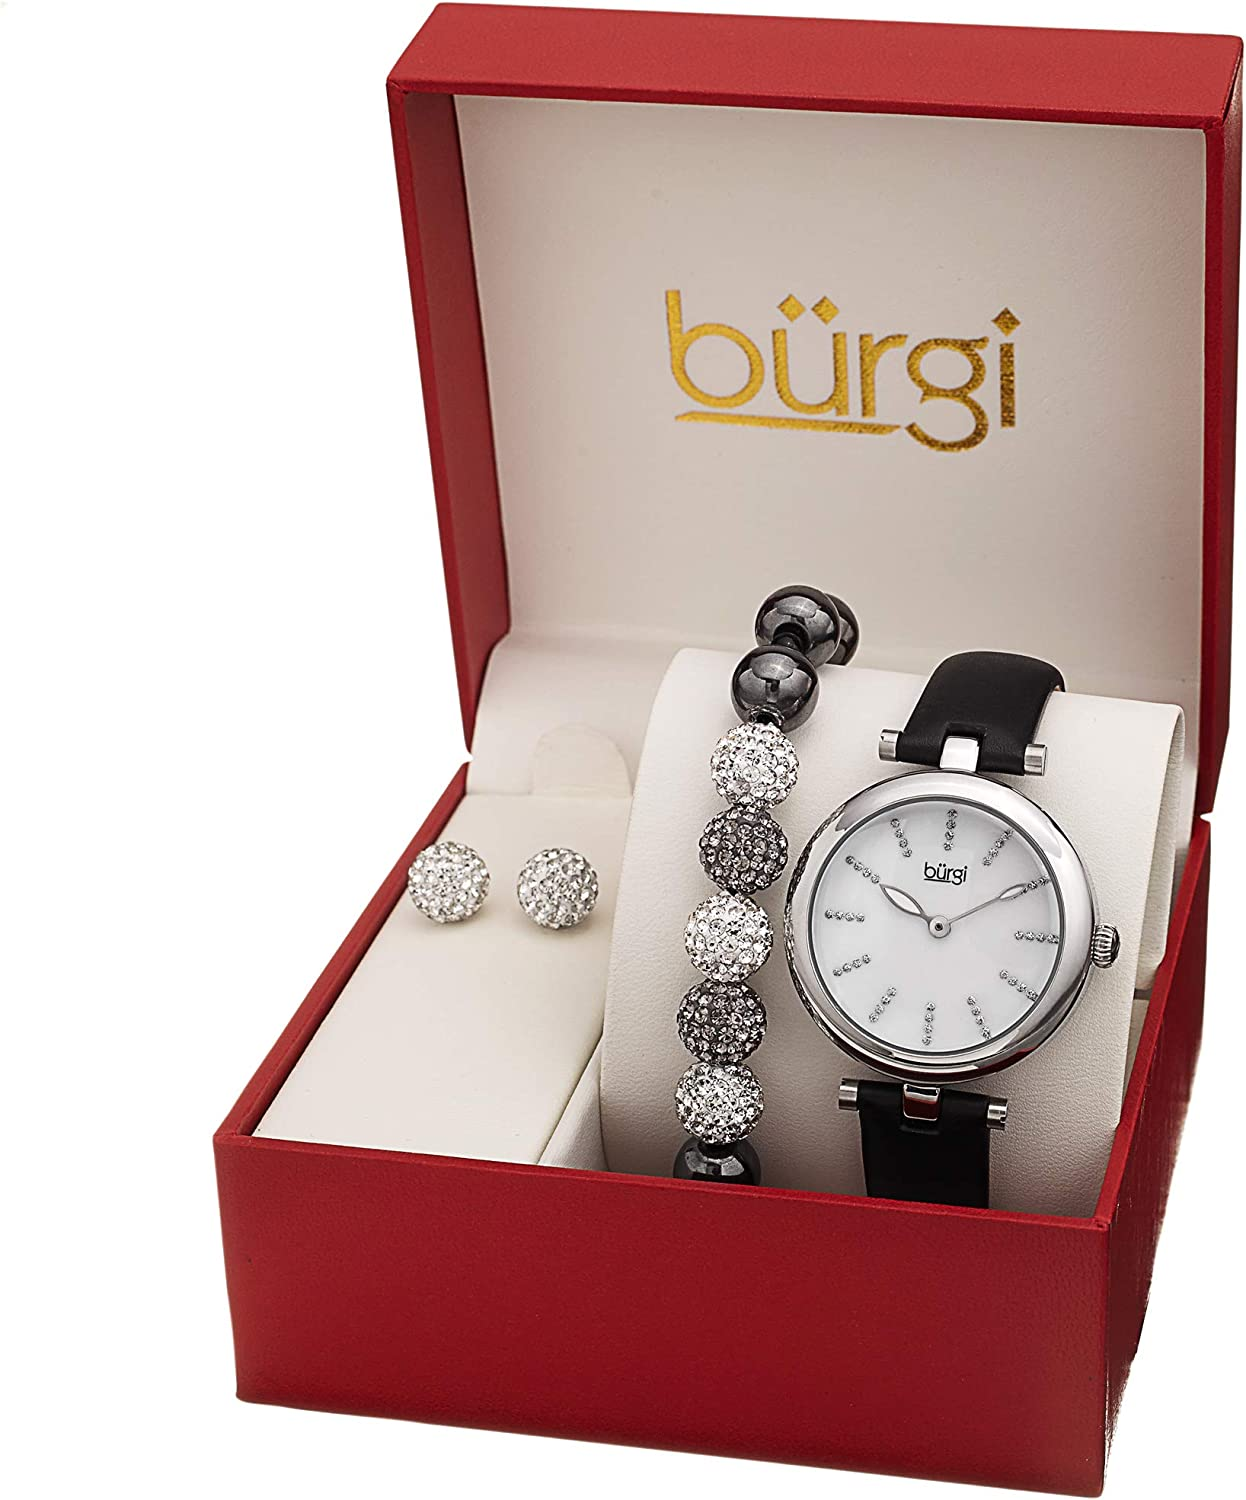 Burgi Ladies Watch Gift Set - Glitter Marker Watch with Leather Strap, Crystal Beaded Bracelet and Matching Crystal Earrings - Mother's Day Gift - BUR241 Silver/White/Black